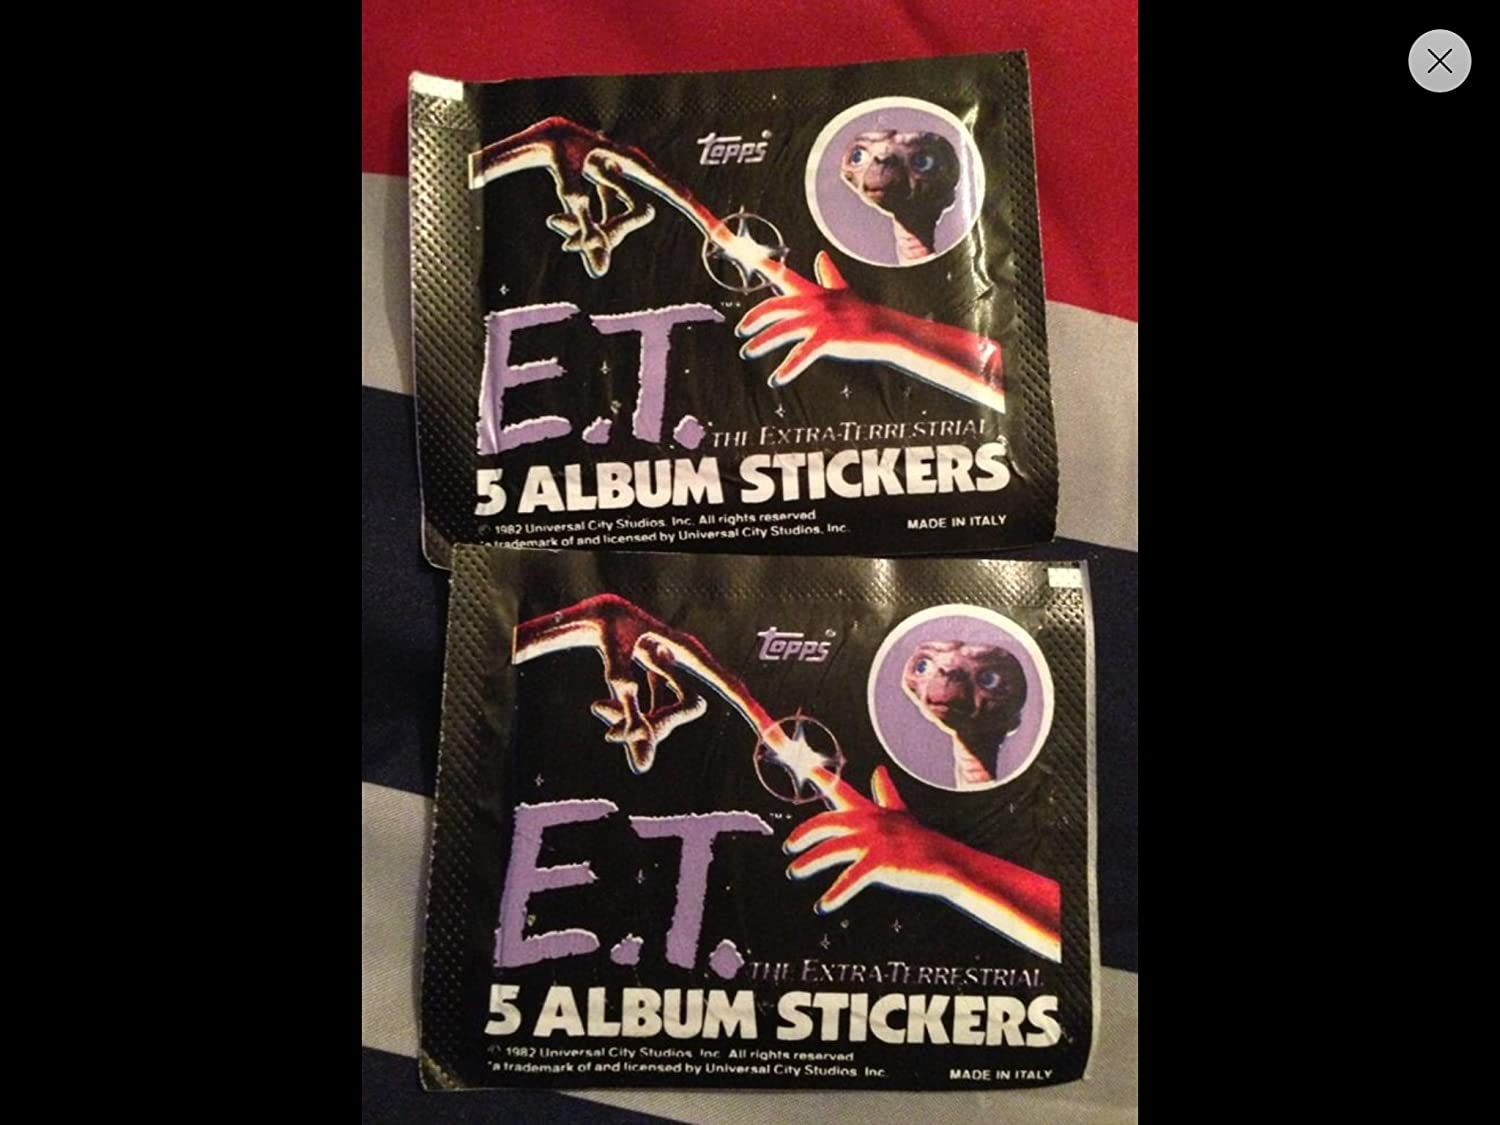 1982 Topps  E.T. 1 Extra-Terrestrial Album Stickers Unopened Pack